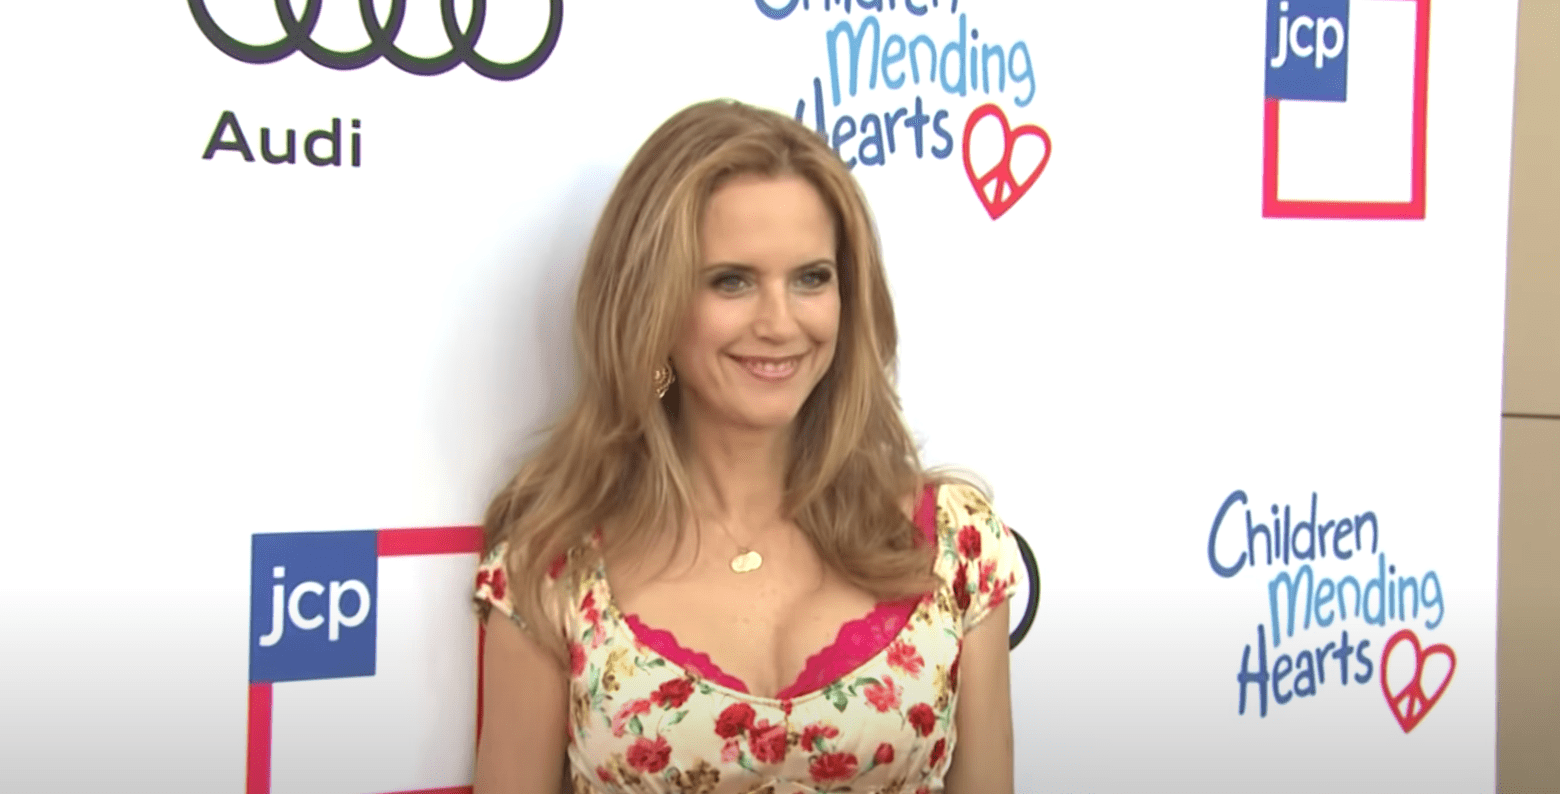 Image Source: Youtube/Access| Kelly at a Children Mending Hearts event